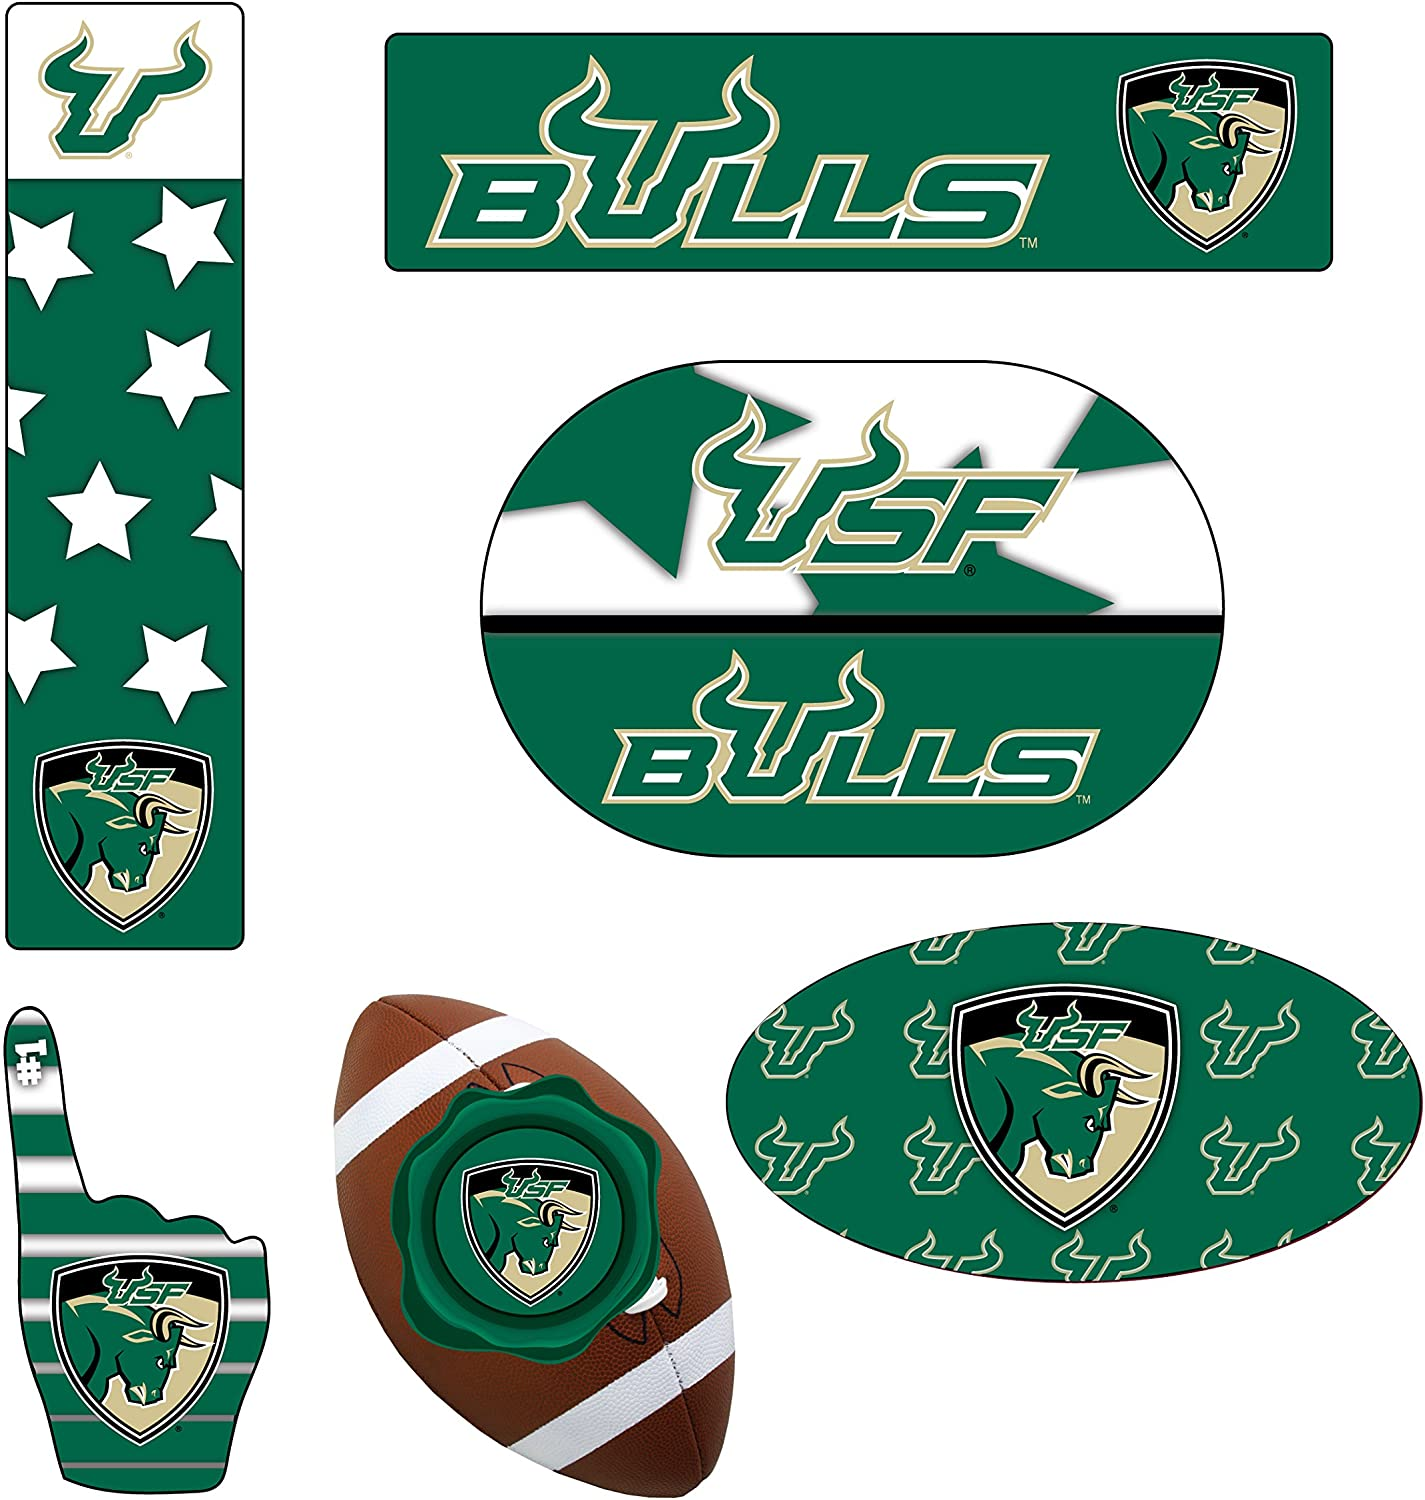 SOUTH FLORIDA BULLS MAGNET SET-SOUTH FLORIDA BULLS 6 PACK OF CAR MAGNETS-AWESOME TAILGATE PACK